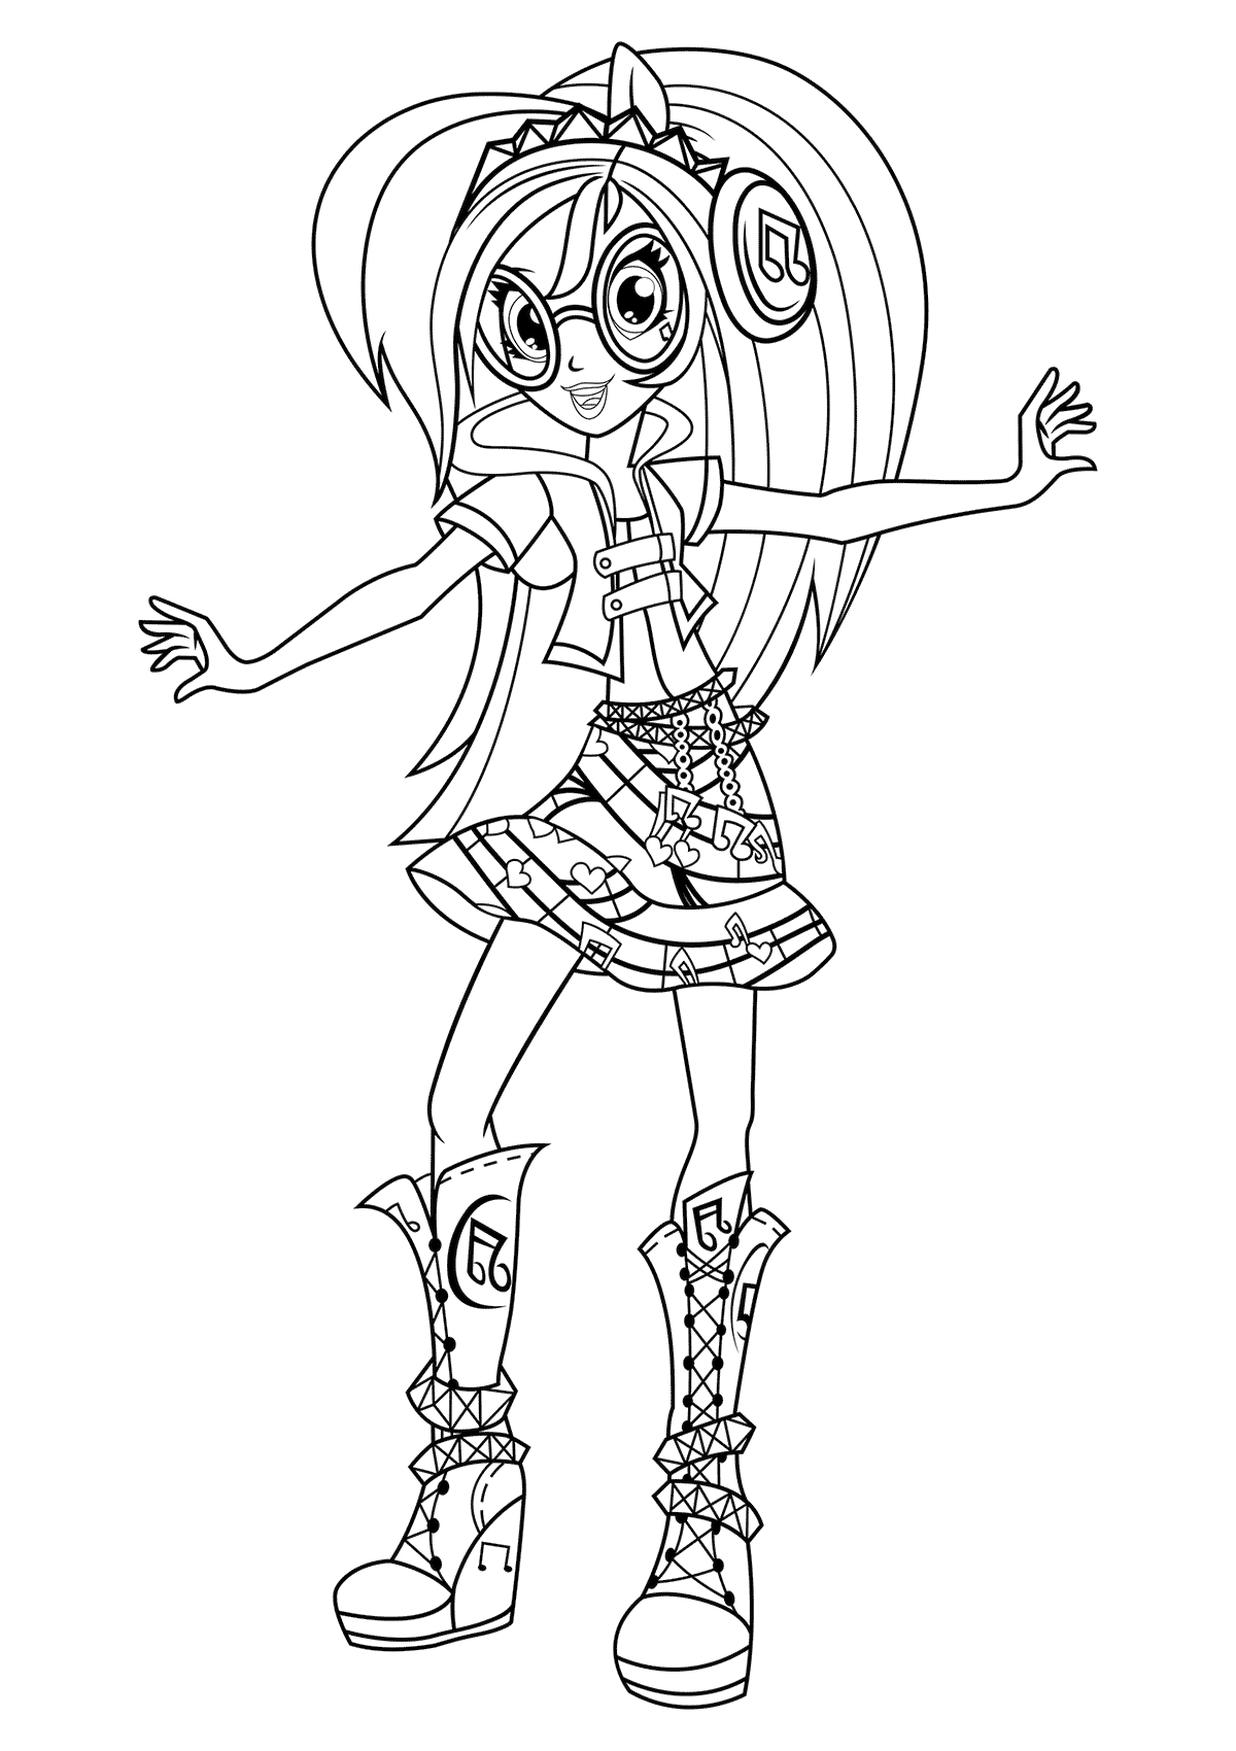 Equestria Girls Coloring Pages for Teen Girls